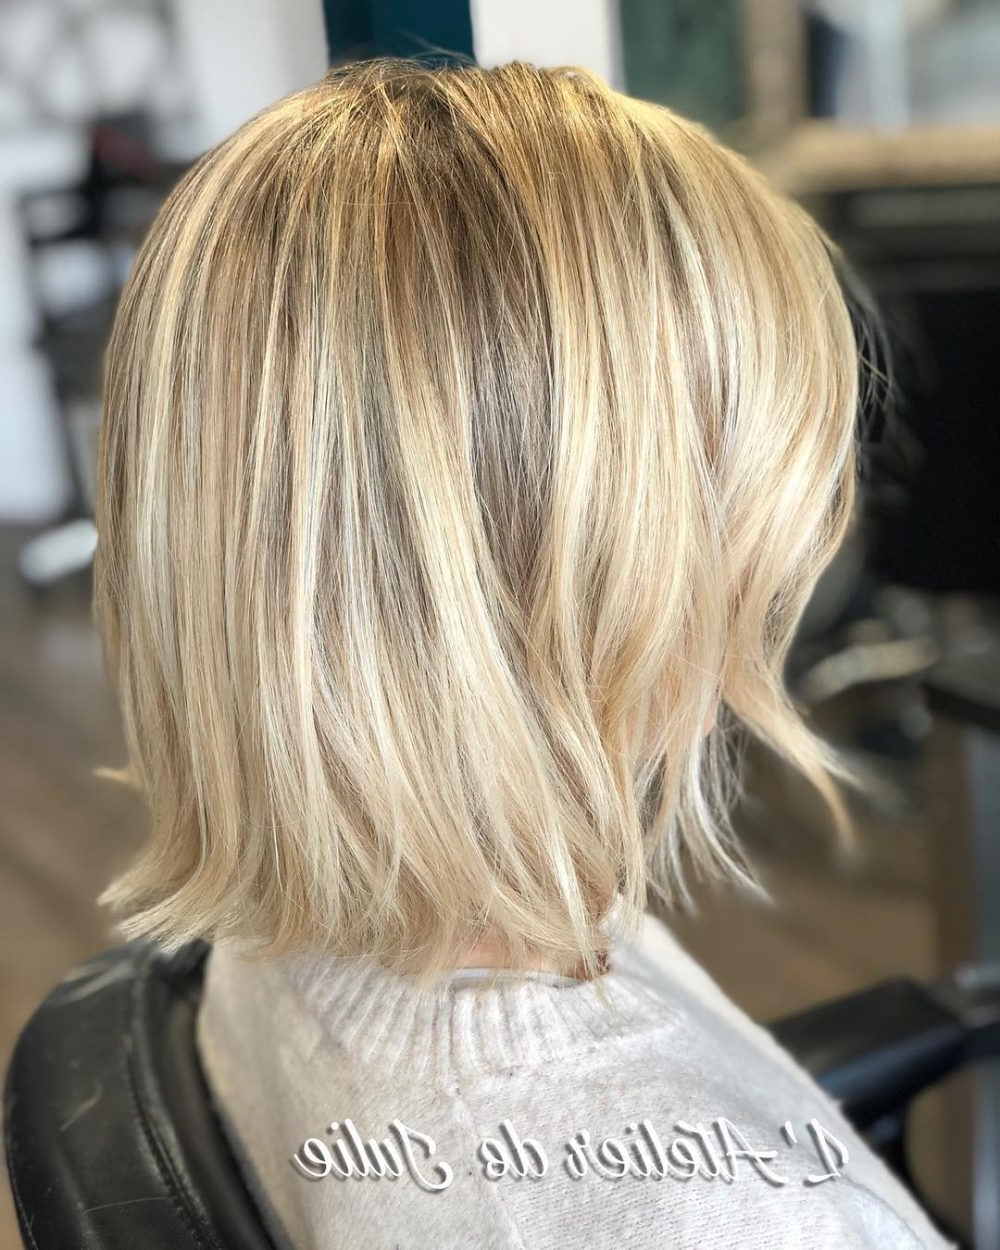 34 Perfect Short Haircuts And Hairstyles For Thin Hair (2018) Regarding Short Hairstyles For Thin Fine Hair (View 3 of 25)